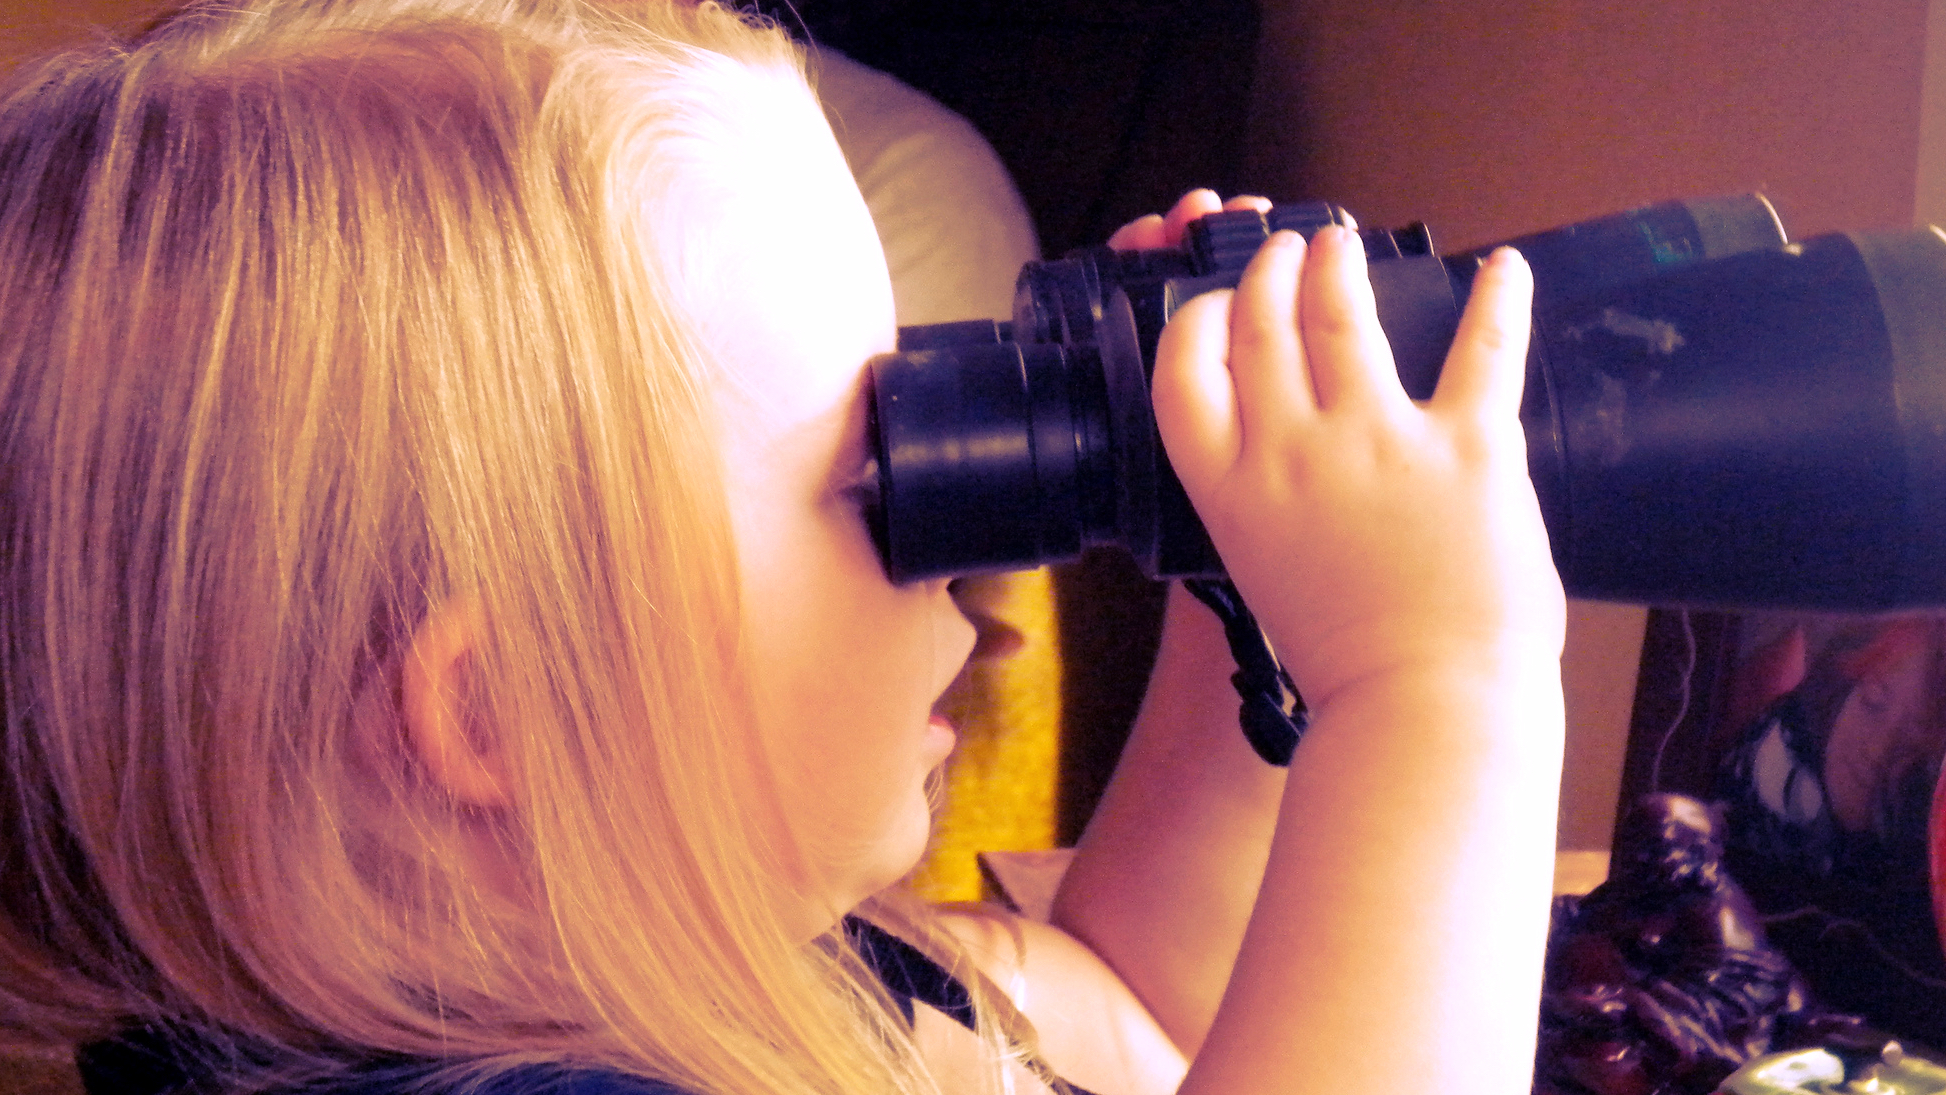 A child looks through binoculars